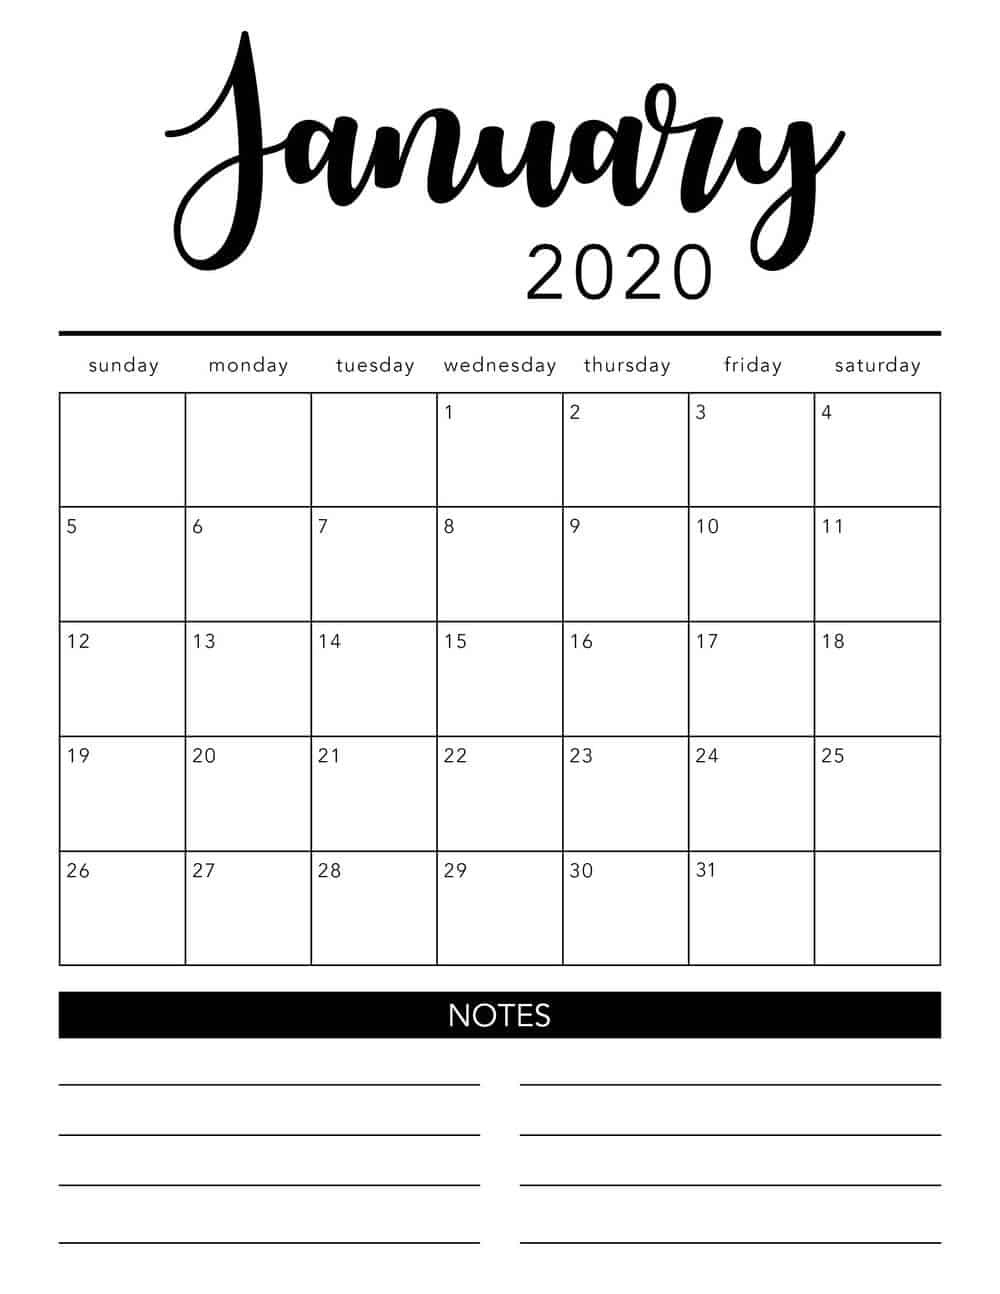 Free 2020 Printable Calendar Template (2 Colors!) - I Heart-Blank Calendar 2020 Printable Monthly